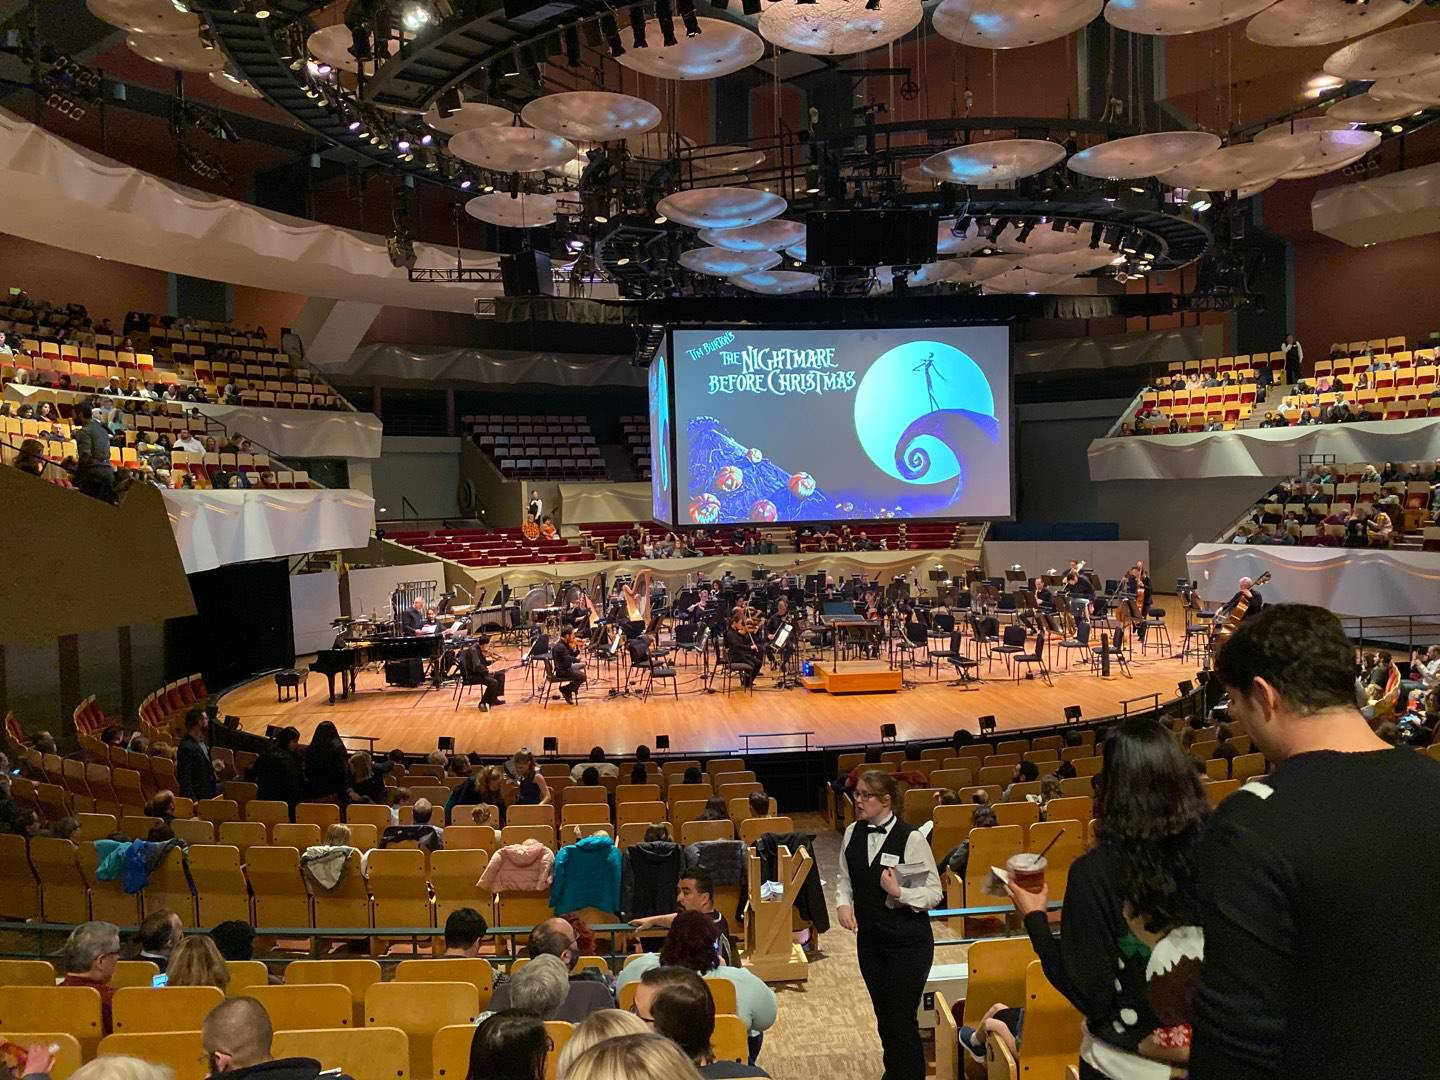 Boettcher Concert Hall Section Orch 2 Row Q Seat 12